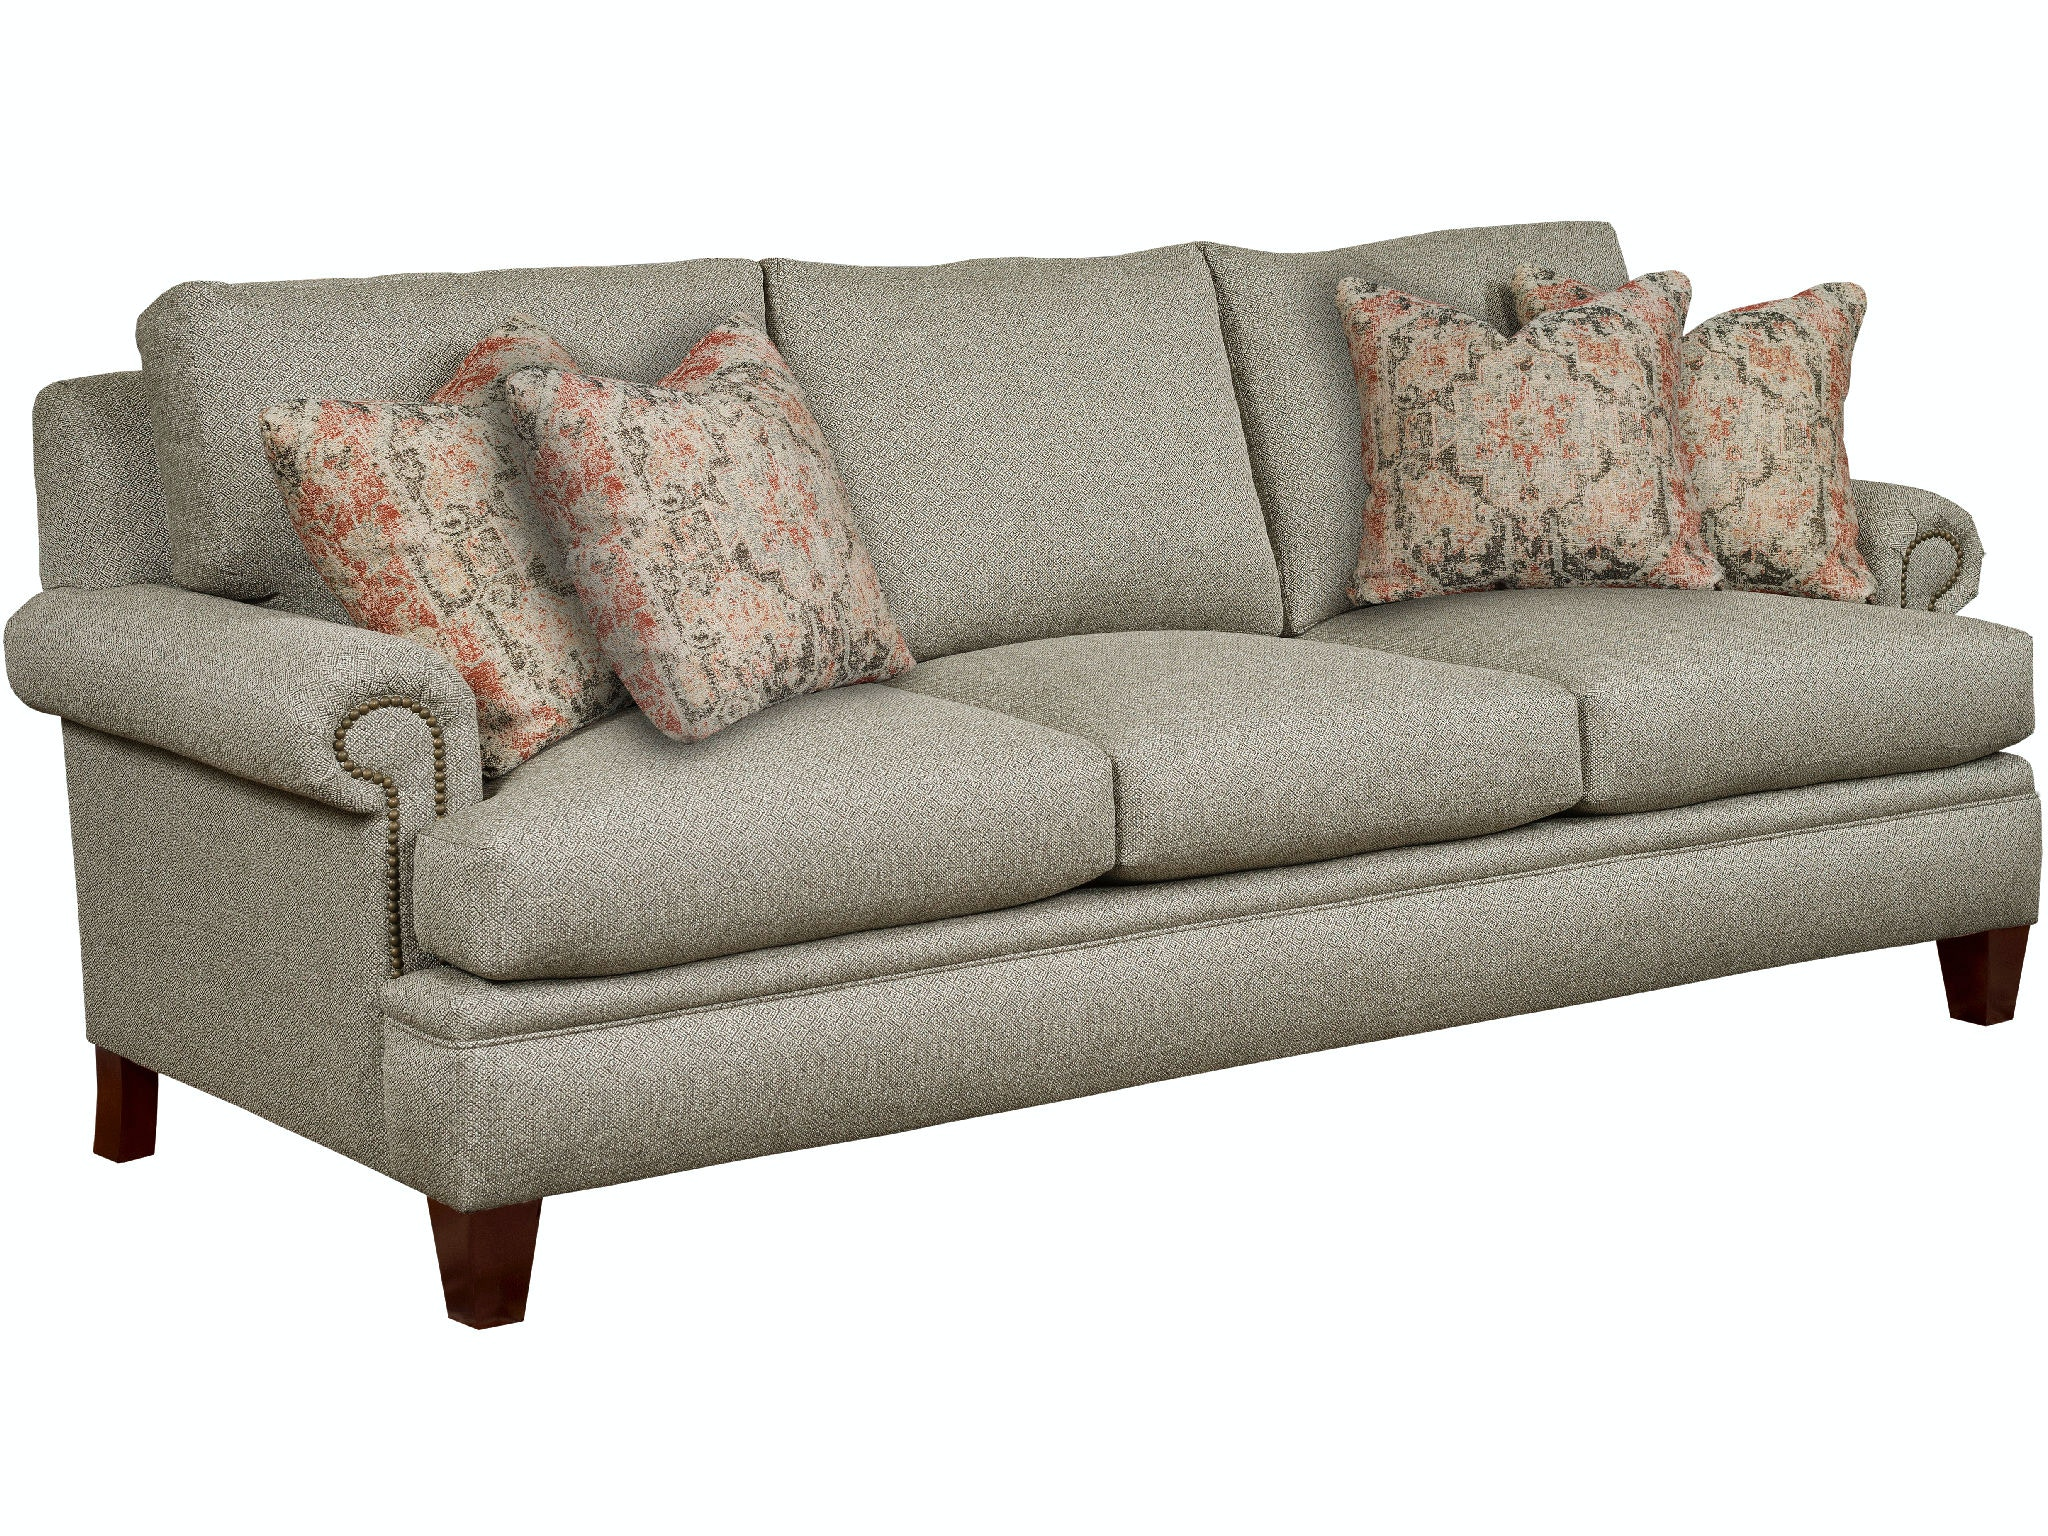 Delicieux Kincaid Furniture Sofa 316 86